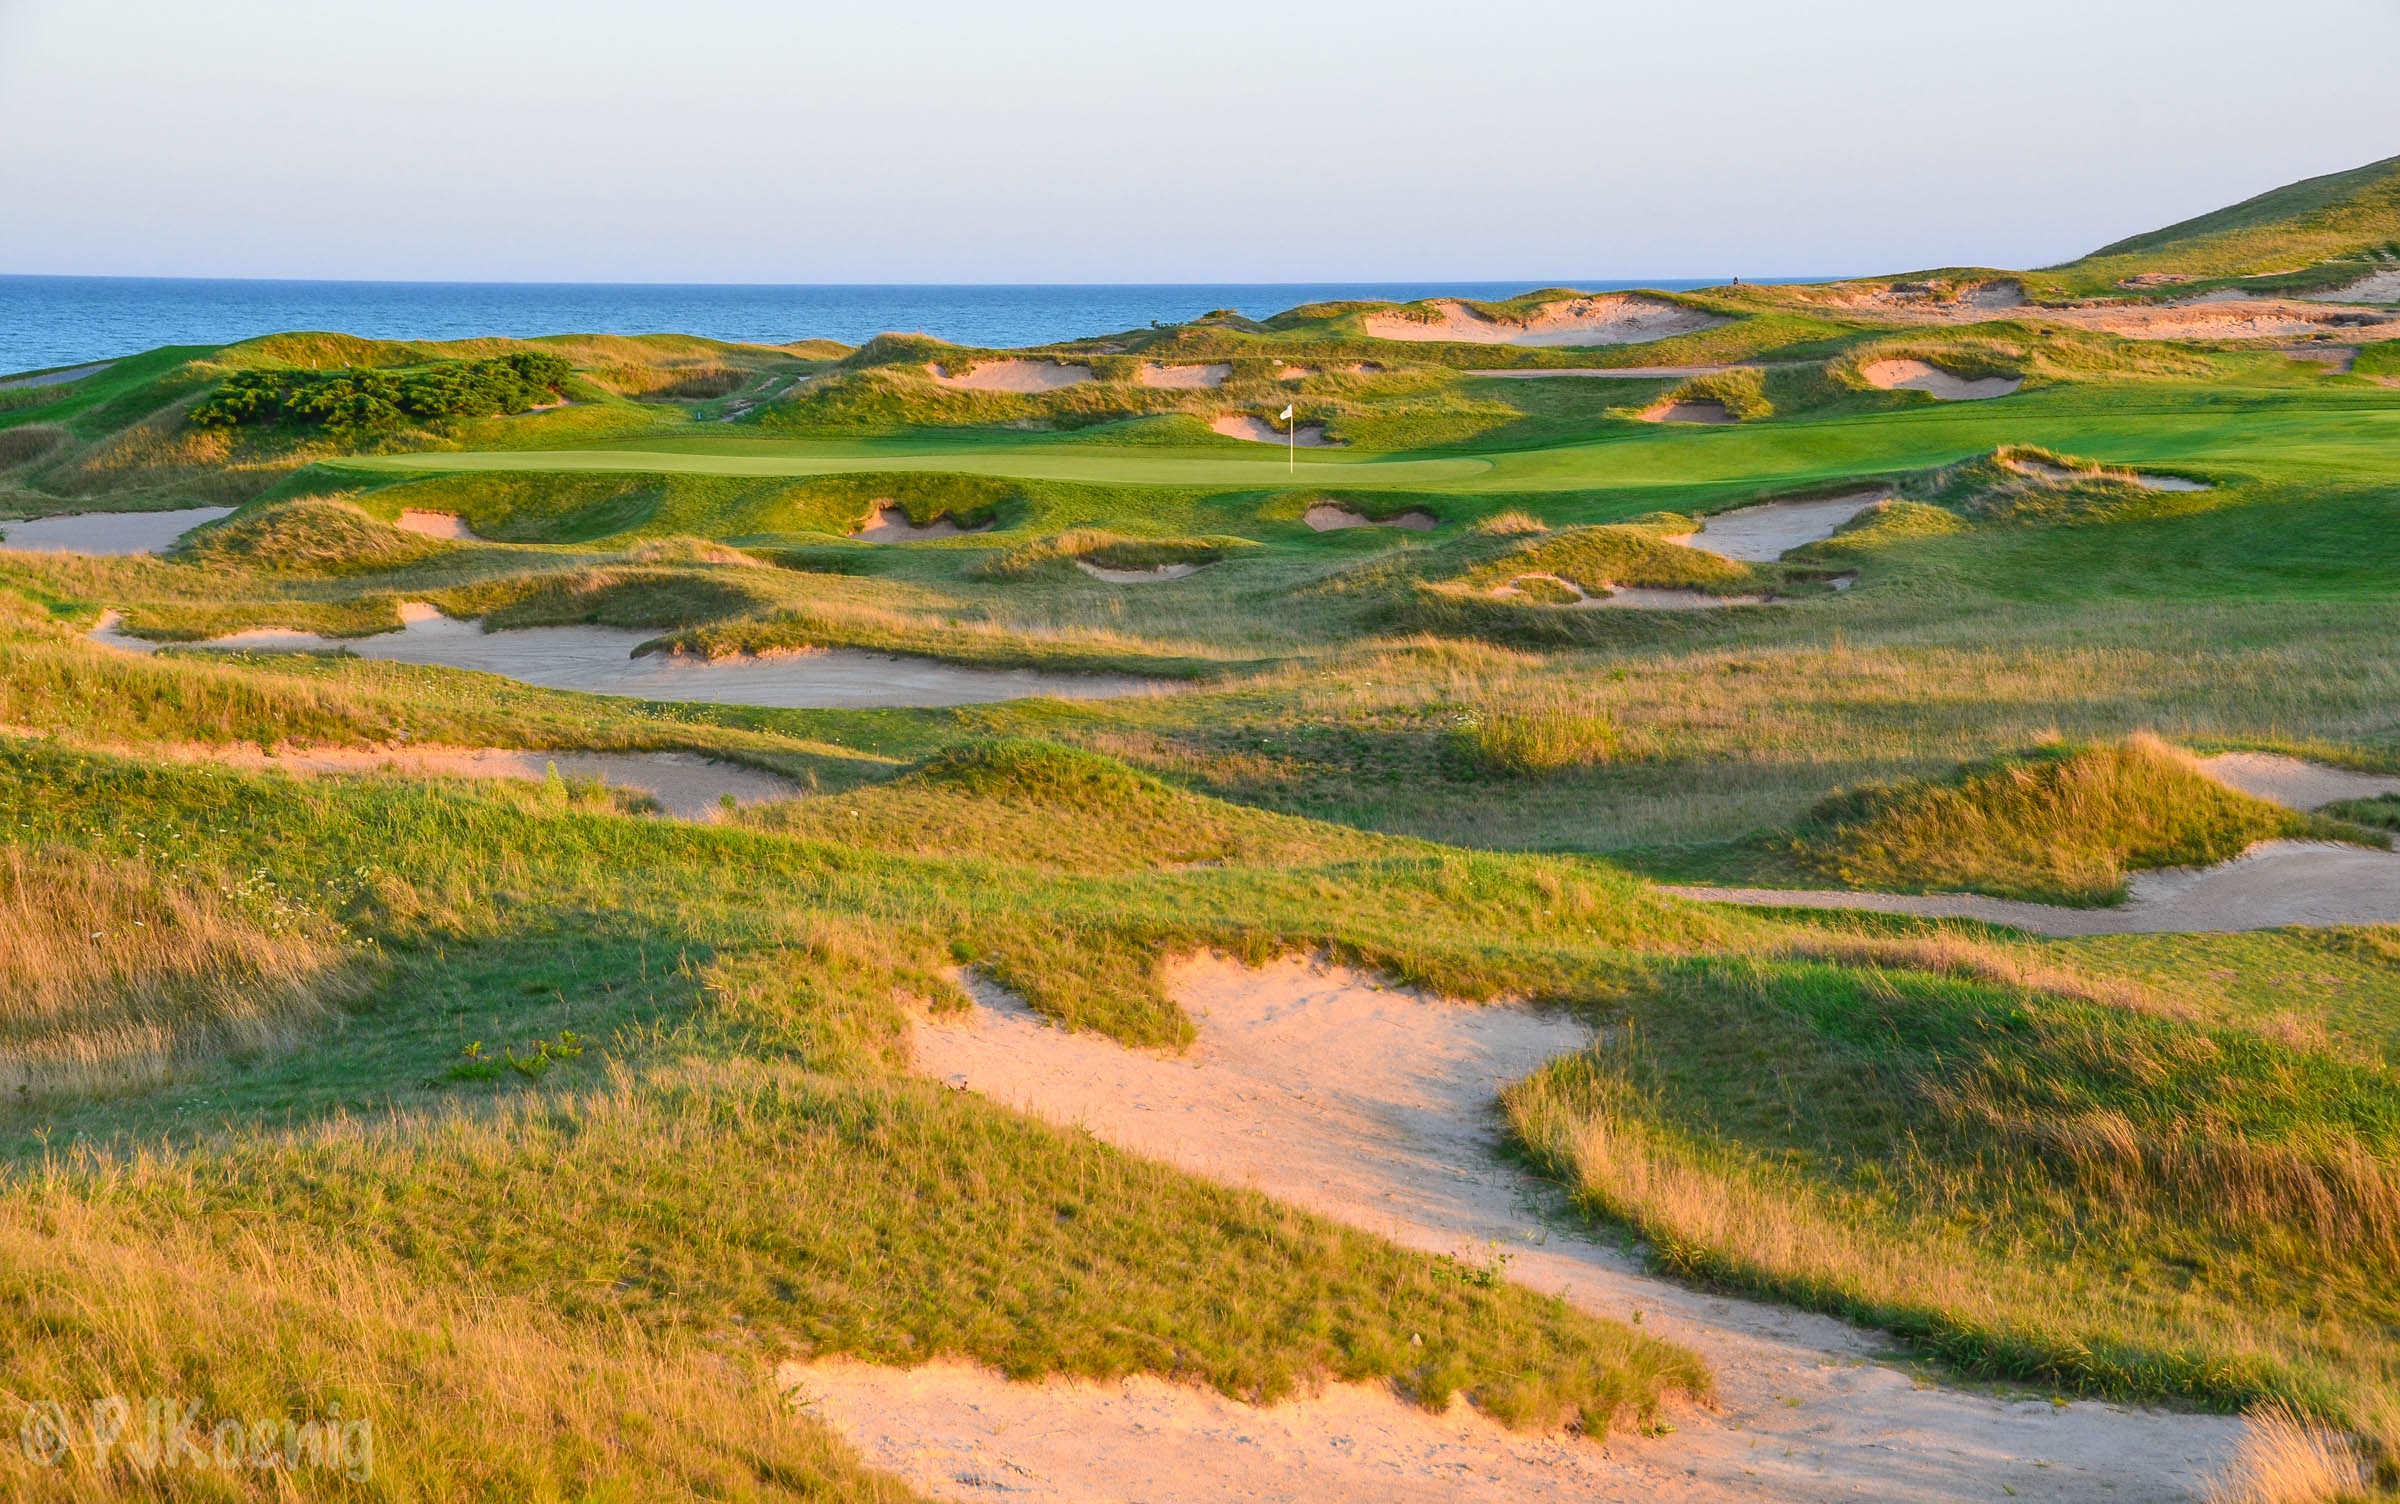 The 1st hole at Whistling Straits' Straits Course